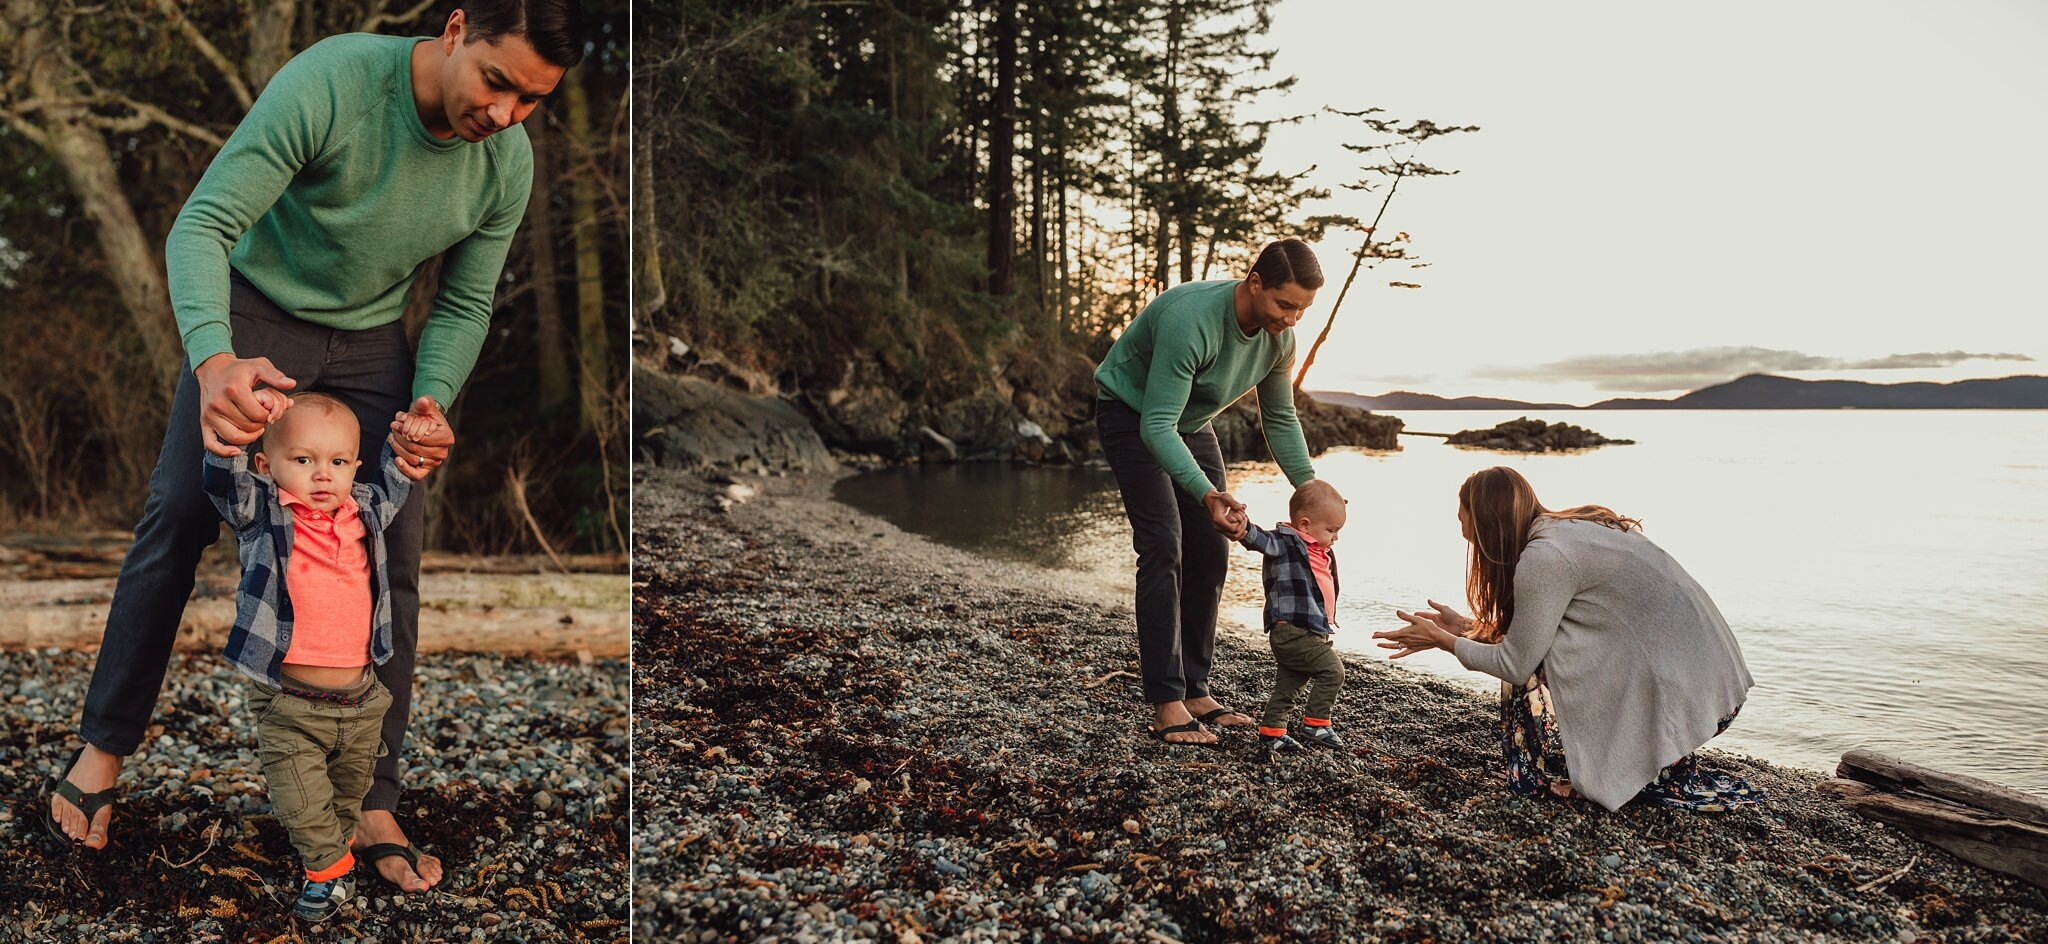 dad helps baby boy walk across beach to mother's arms